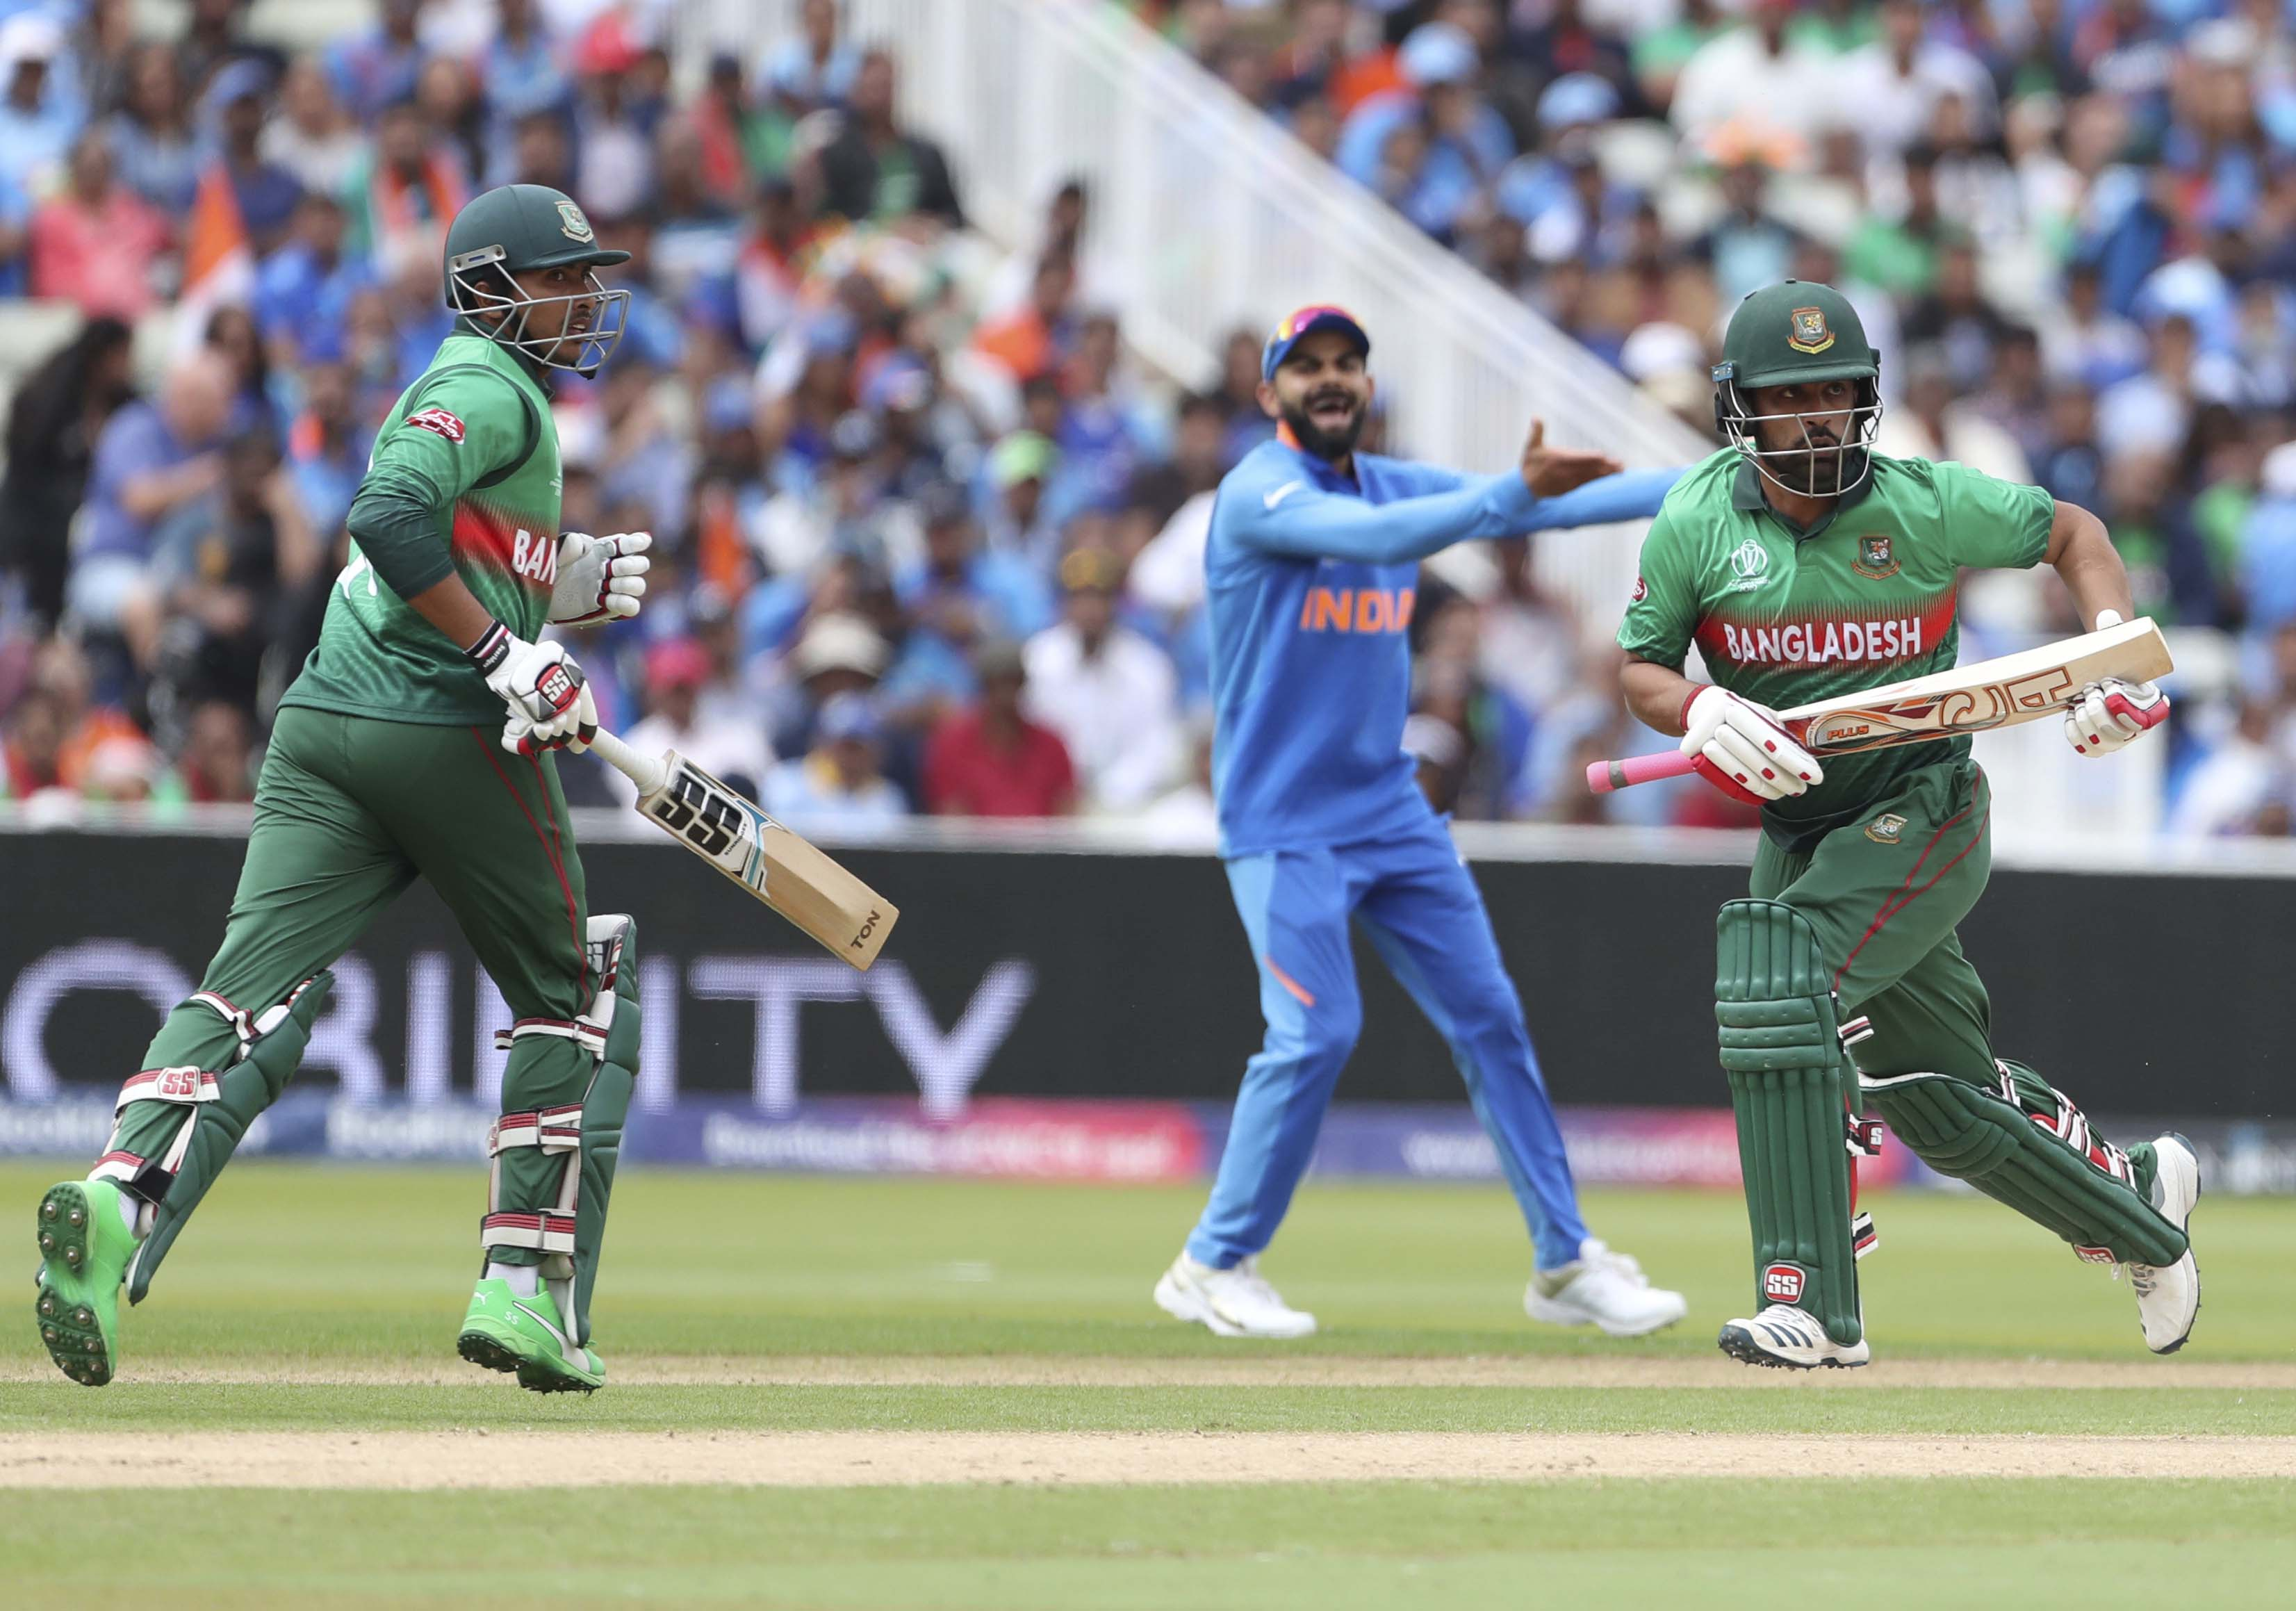 Ind Vs Ban Cricket World Cup 2019 Bangladesh Fights Back India Till The End